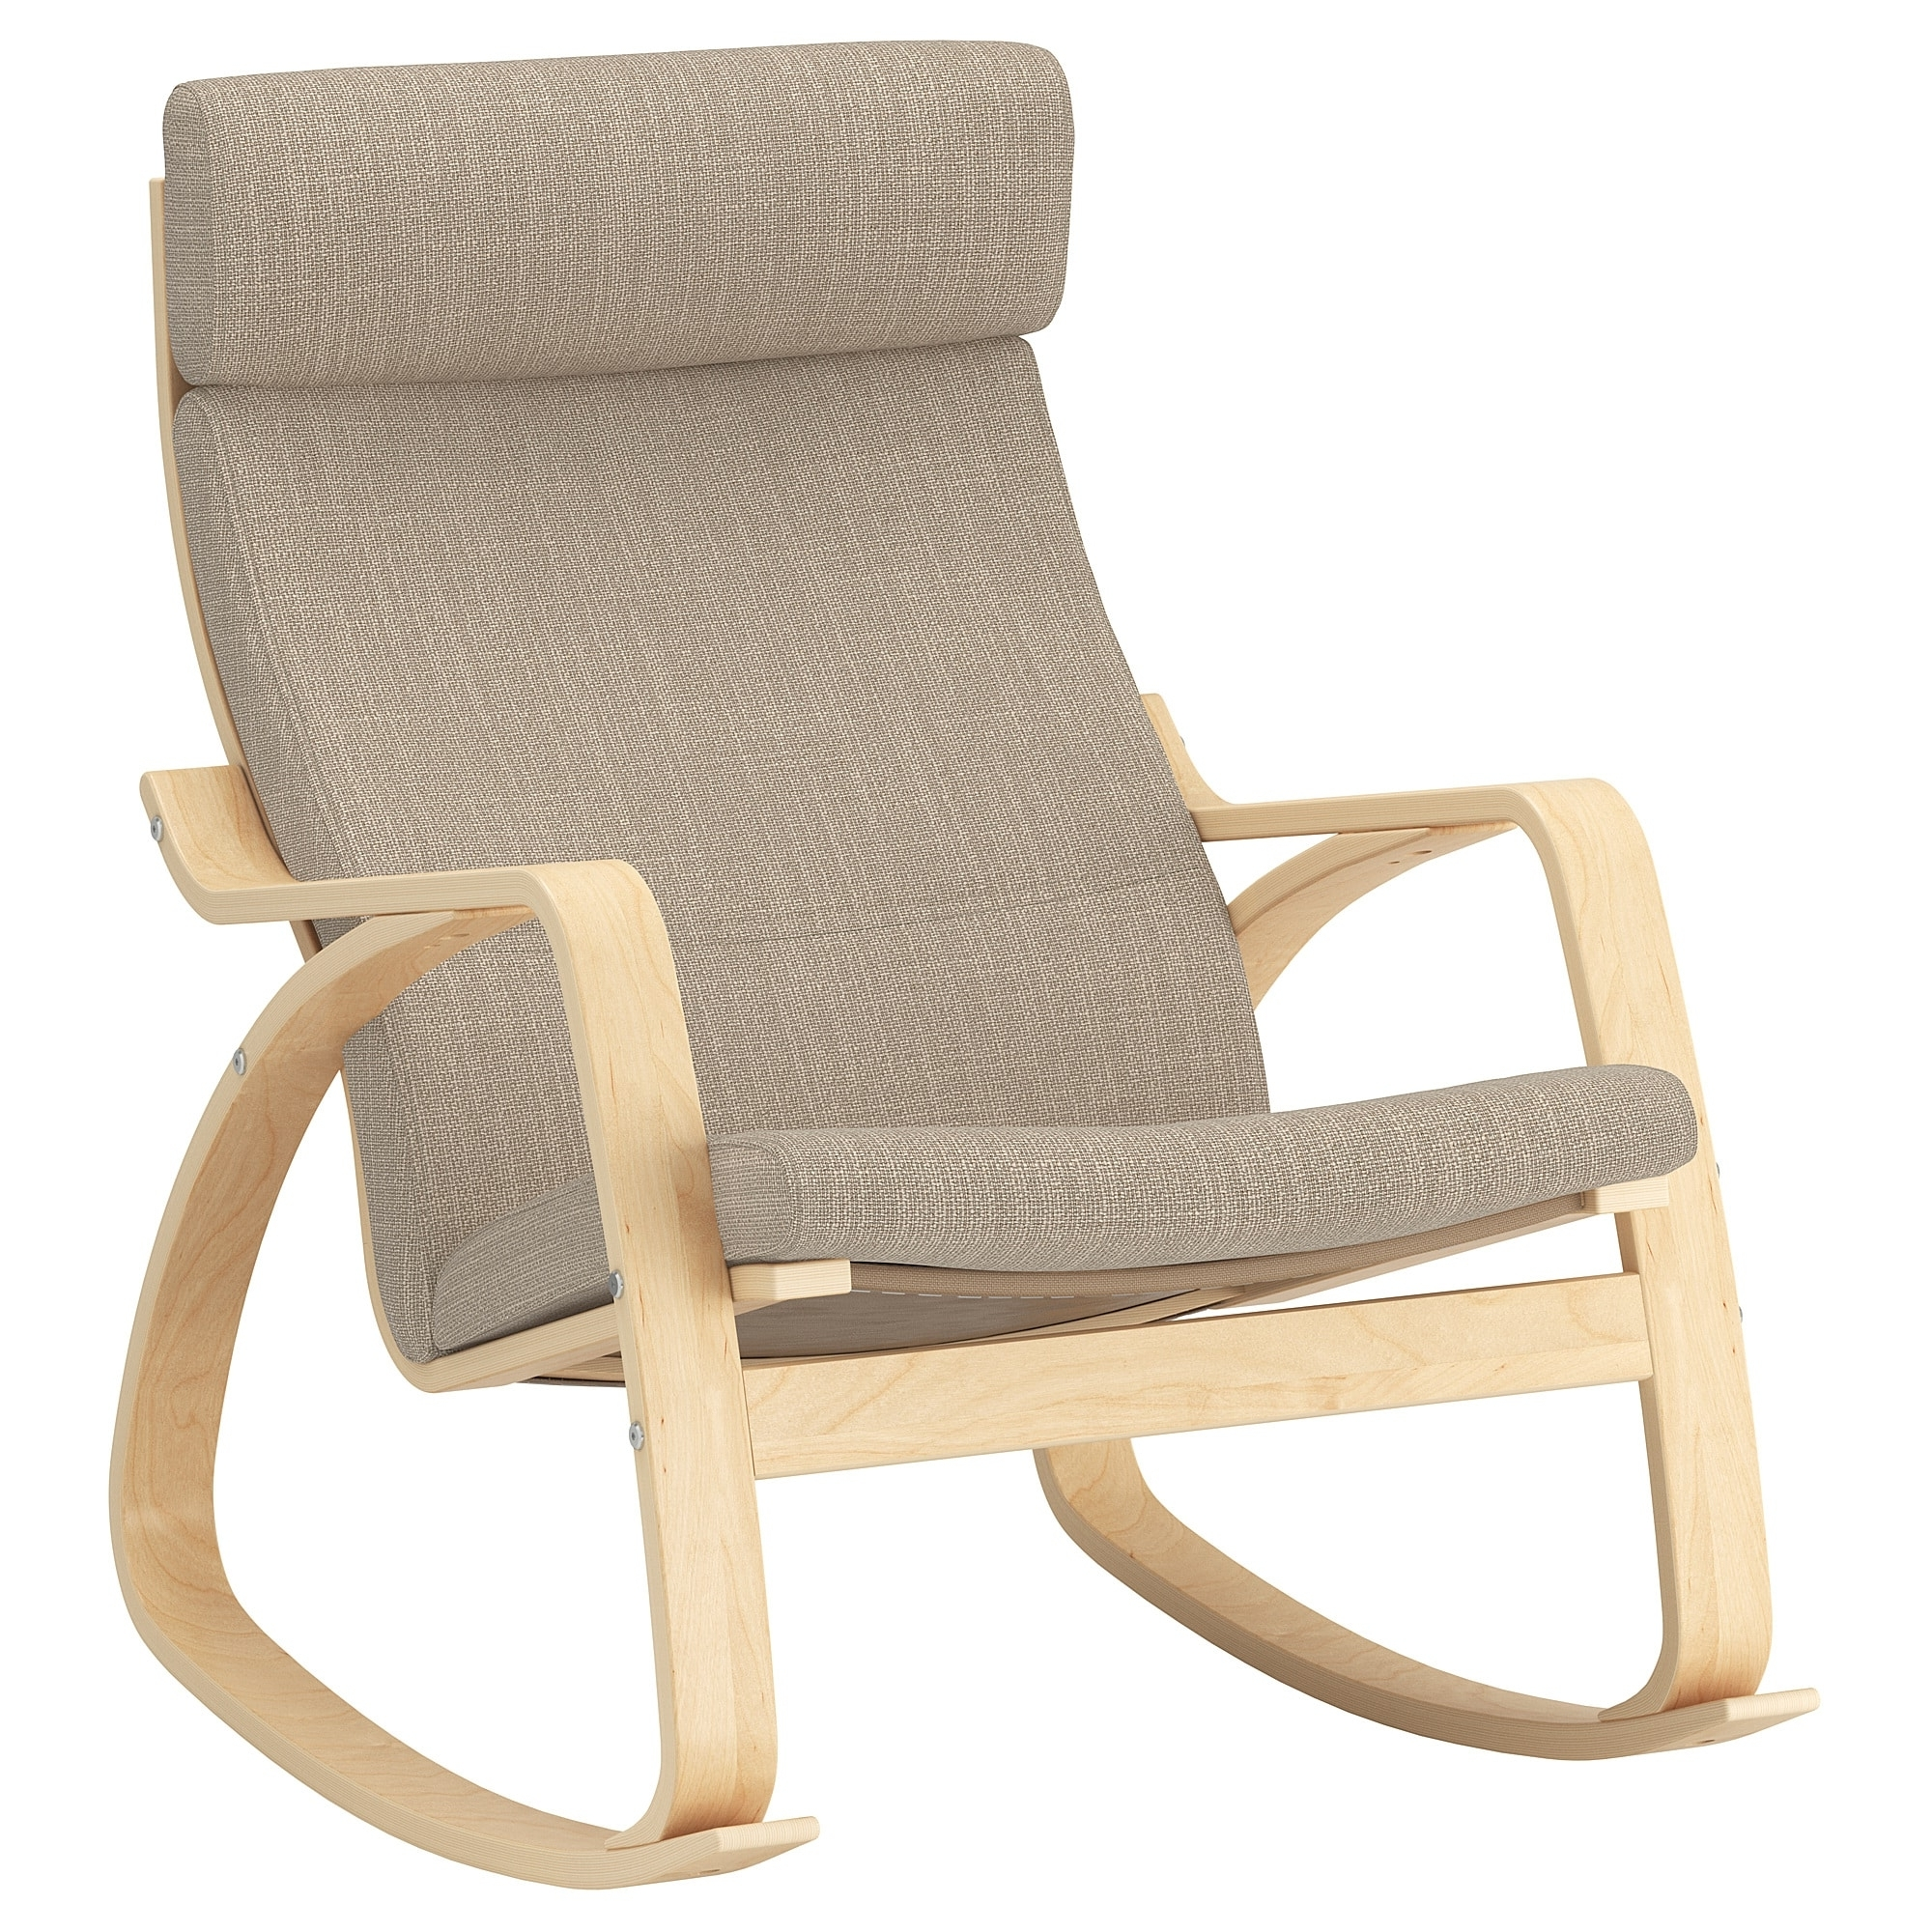 Poäng Rocking Chair Birch Veneer/hillared Beige – Ikea Inside Most Recently Released Ikea Rocking Chairs (View 16 of 20)